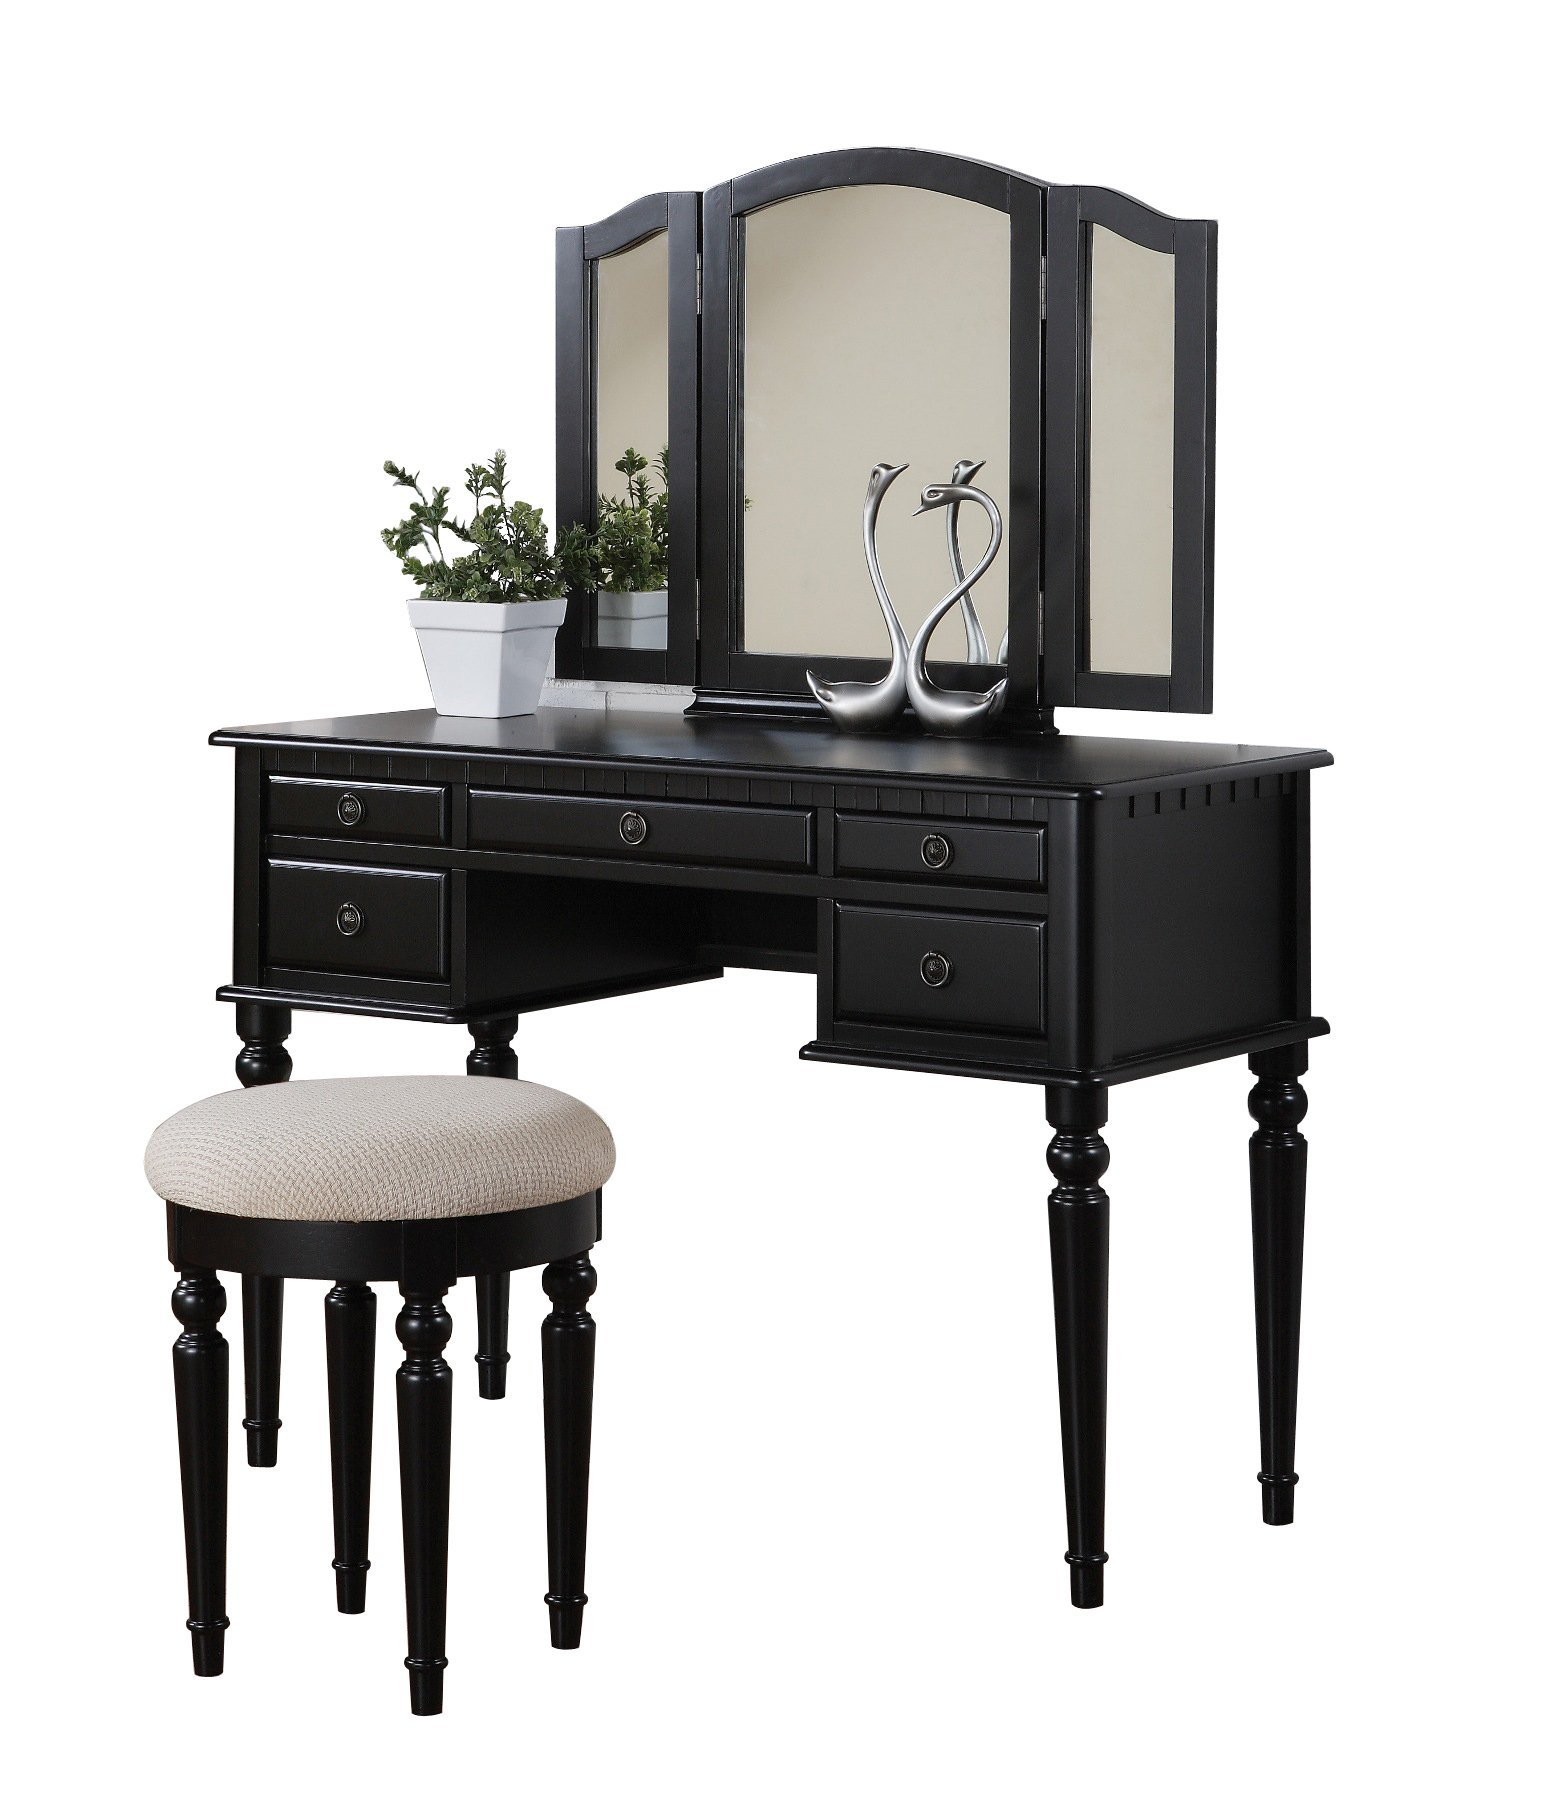 Fantastic Details About Bobkona F4072 St Croix Collection Vanity Set With Stool Black Machost Co Dining Chair Design Ideas Machostcouk